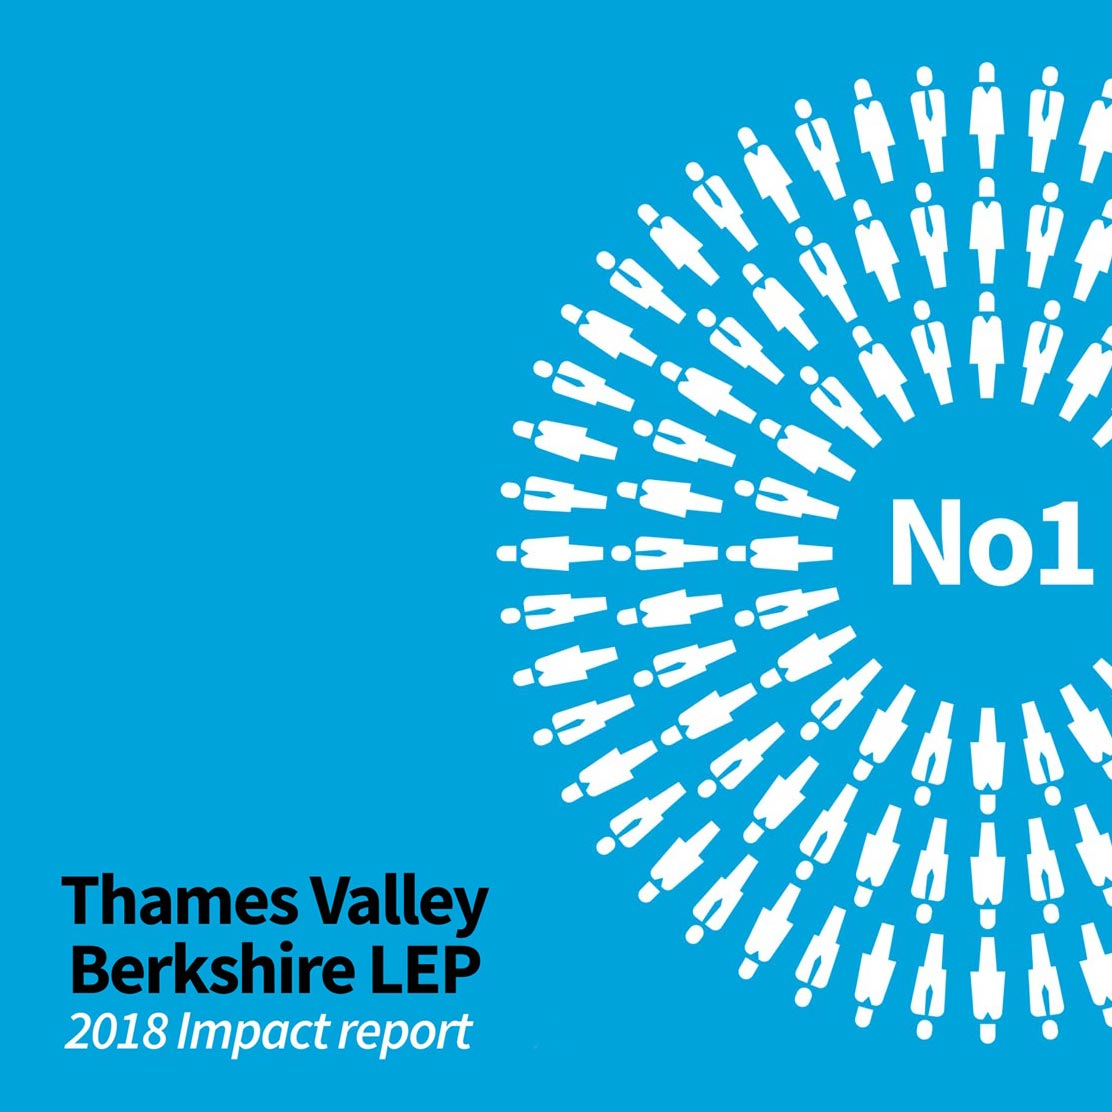 Thames Valley Berkshire LEP - 2018 Impact Report